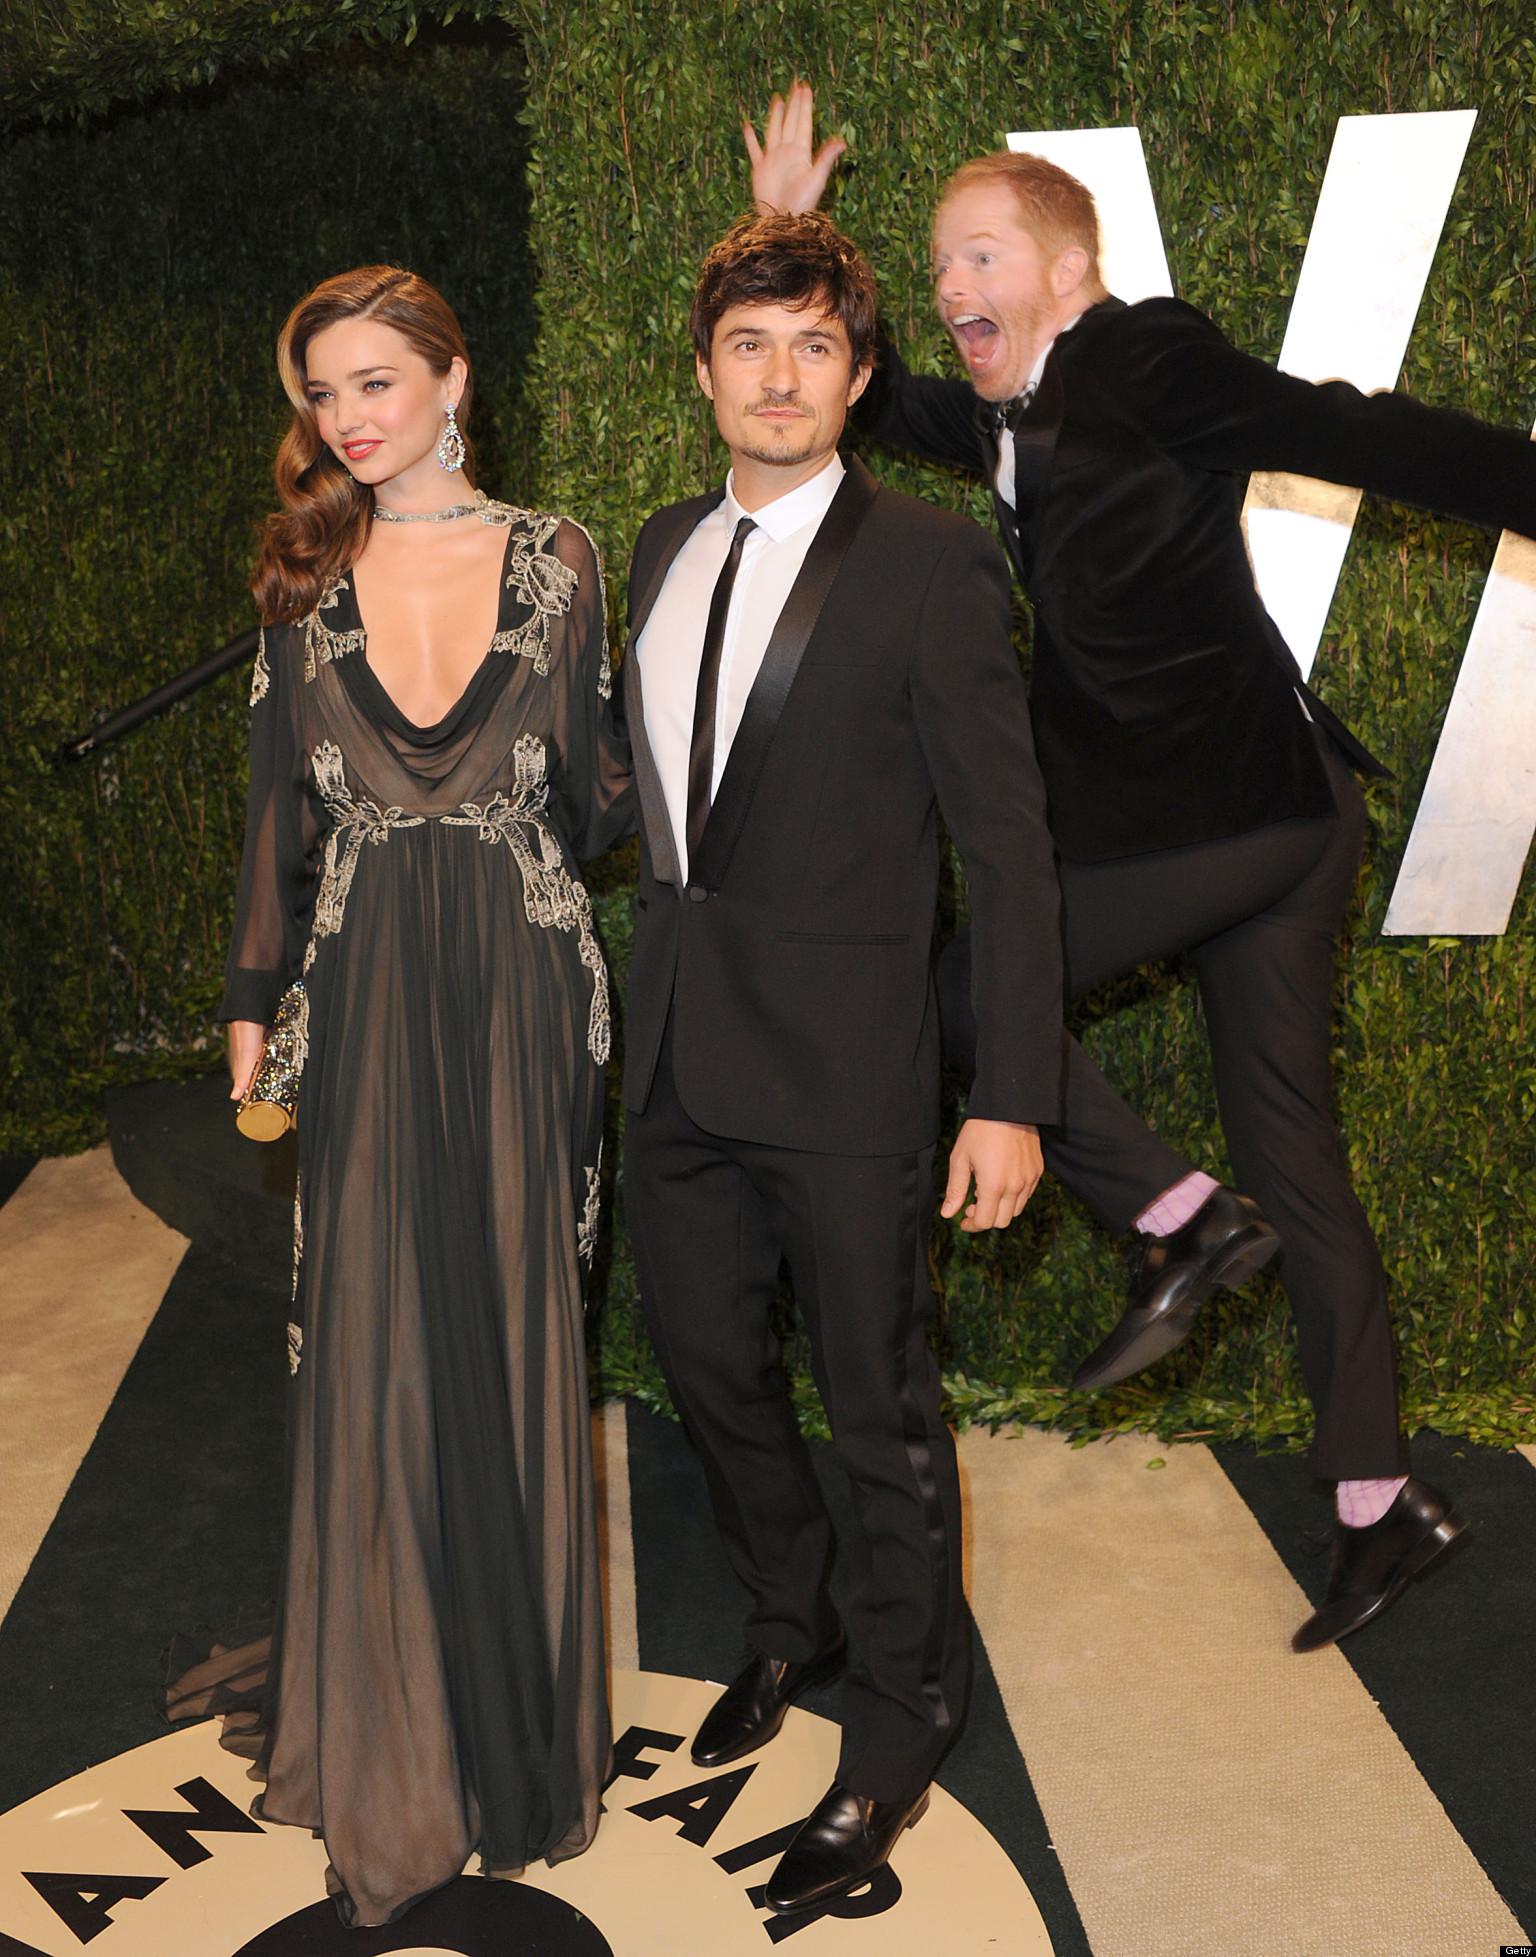 Celebrity Photobomb Pictures Celebrities Photobombing And